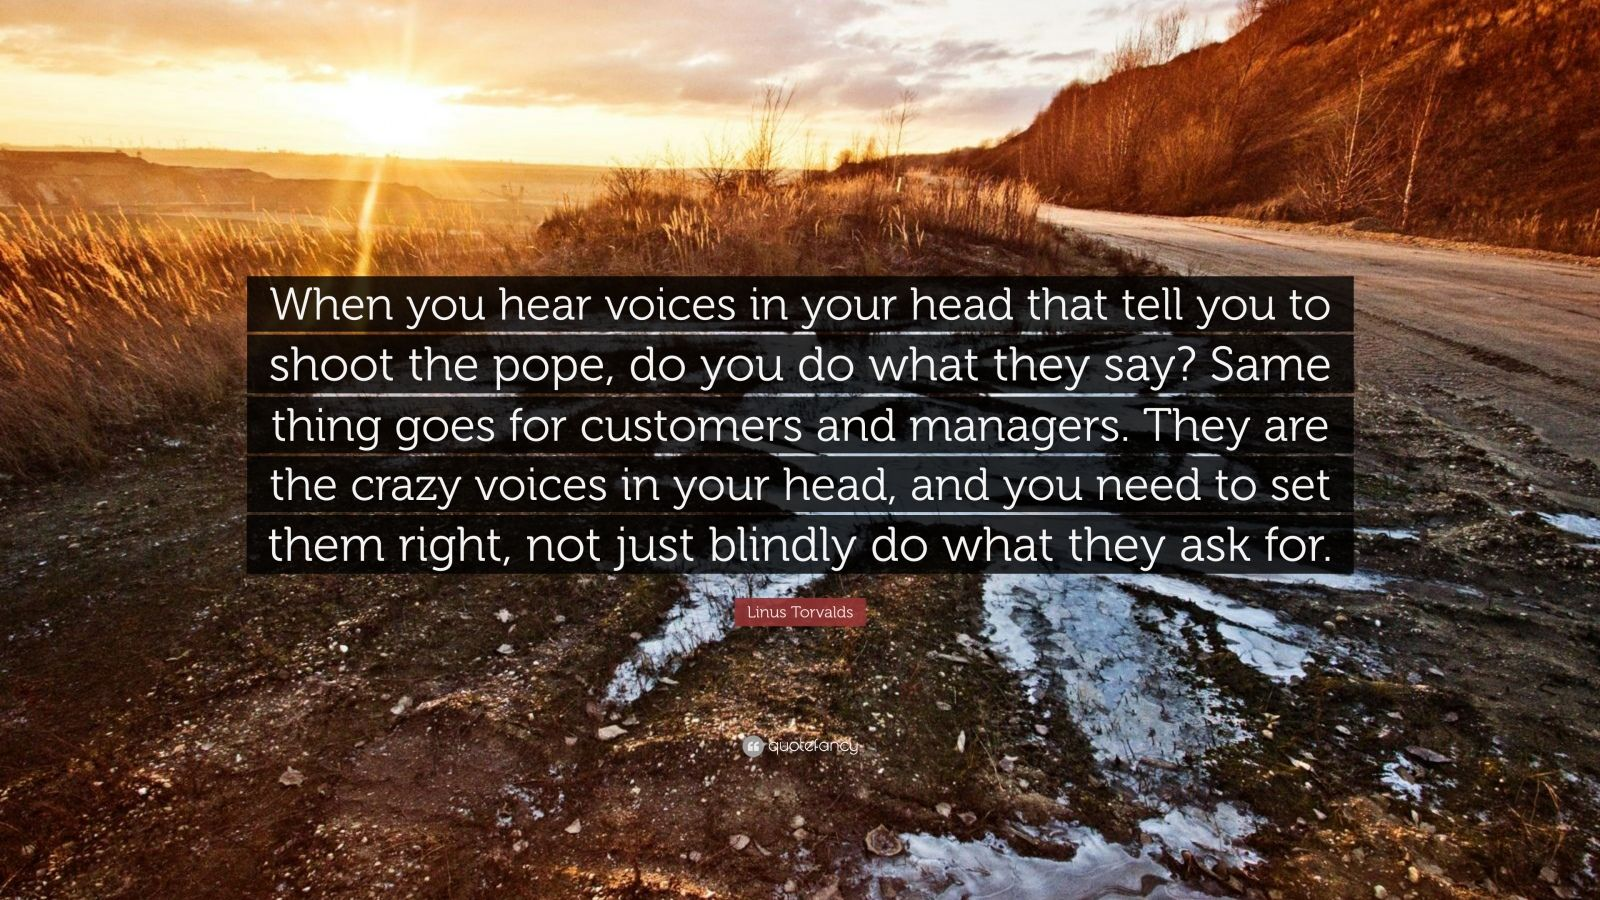 """Linus Torvalds Quote: """"When you hear voices in your head that tell you to shoot the pope, do you do what they say? Same thing goes for customers and managers. They are the crazy voices in your head, and you need to set them right, not just blindly do what they ask for."""""""